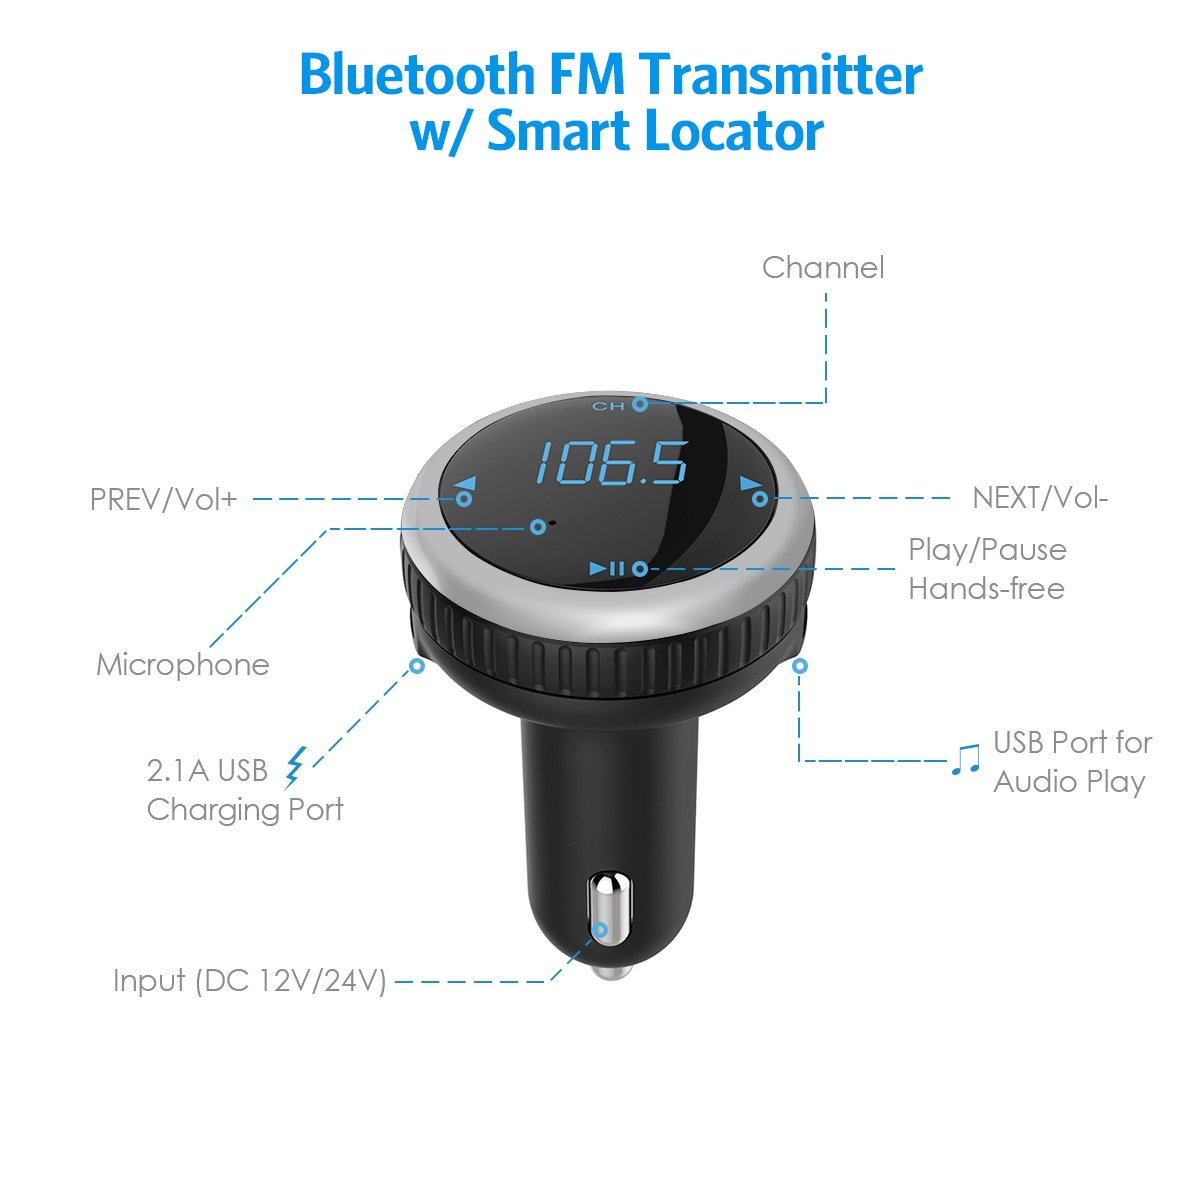 Criacr Bluetooth FM Transmitter, Car Charger with Smart Locator, 5V 2.1A USB Charging Port, Wireless In-Car Radio Adapter Car Kit, MP3 Player, Hands-free Call for iPhone, Samsung, Smartphone (Silver) by AMIR (Image #2)